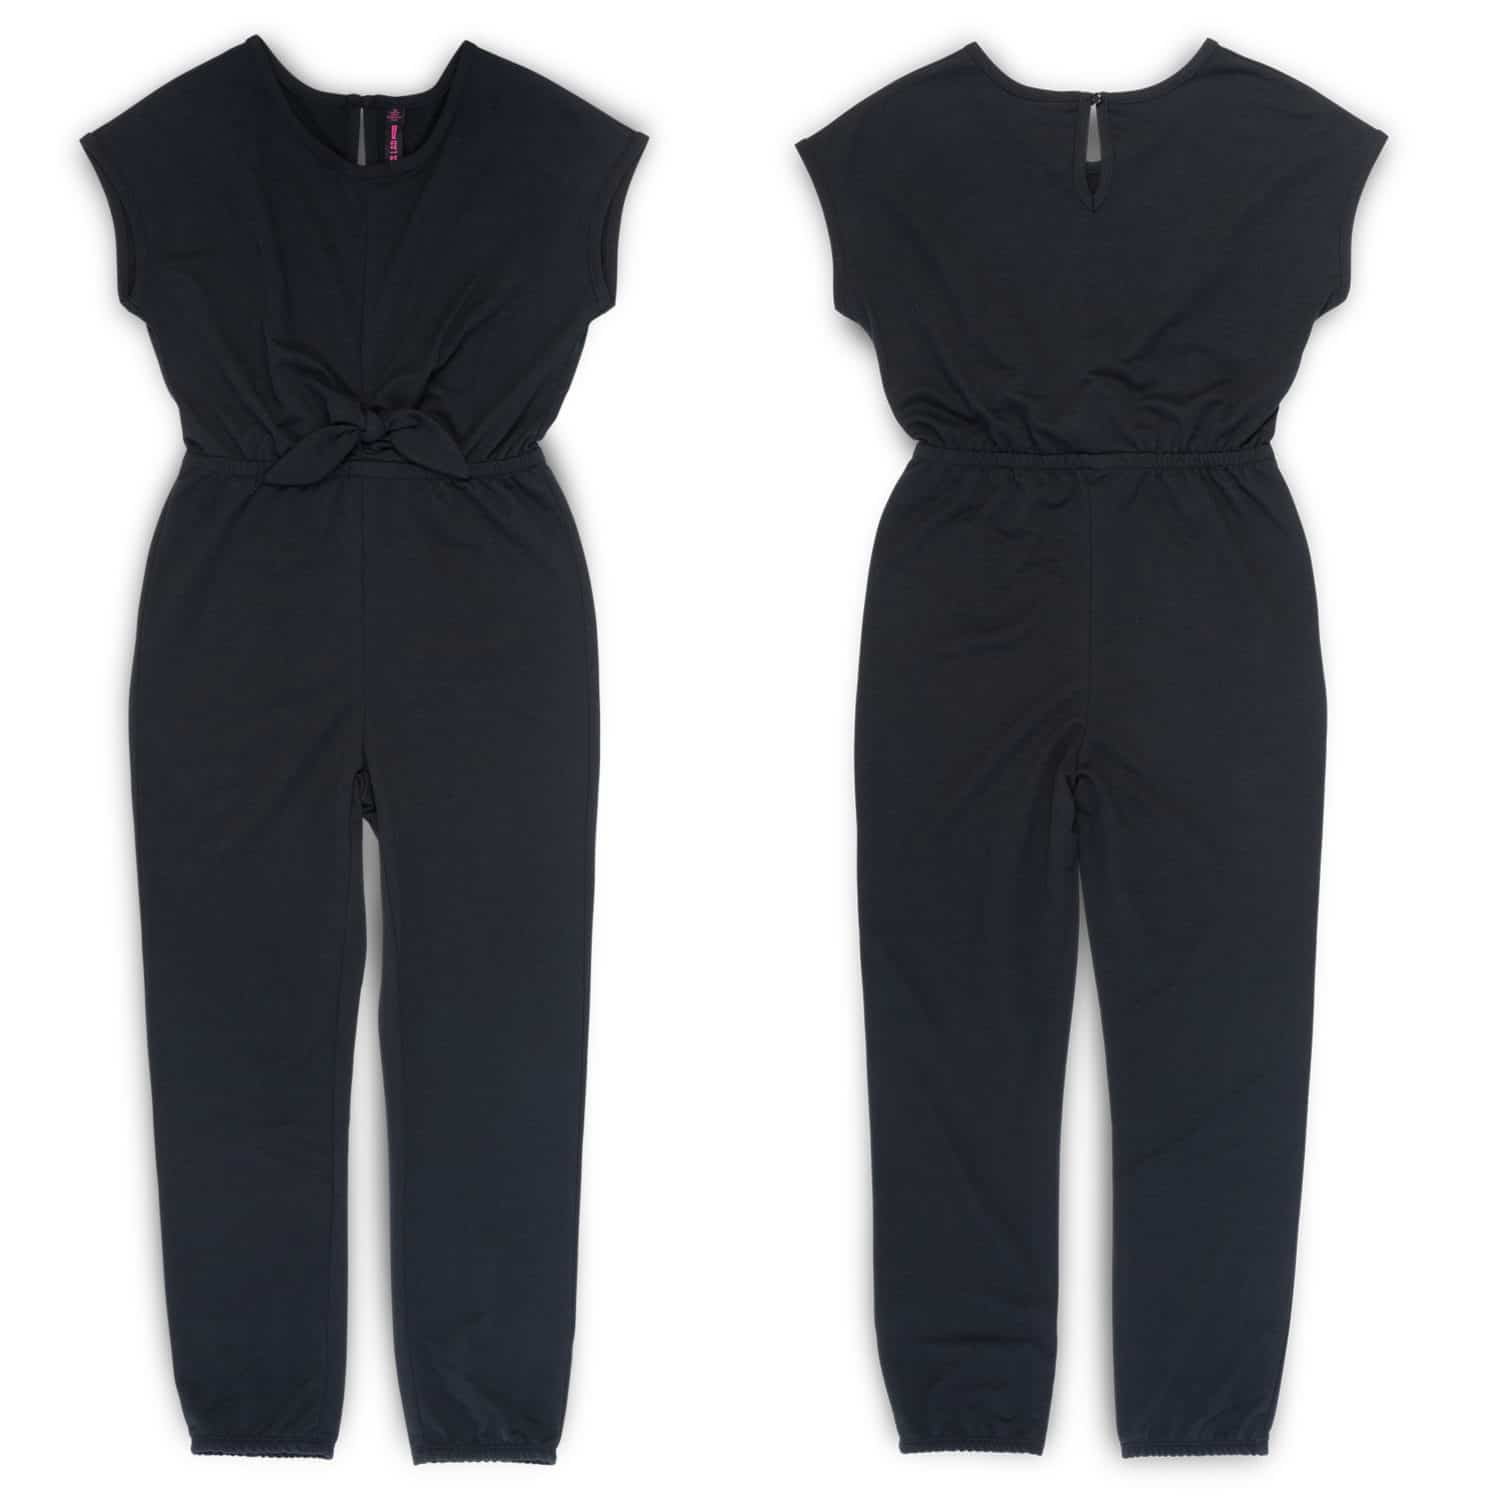 Jumpsuit Flat Garment Clothing Product Photography